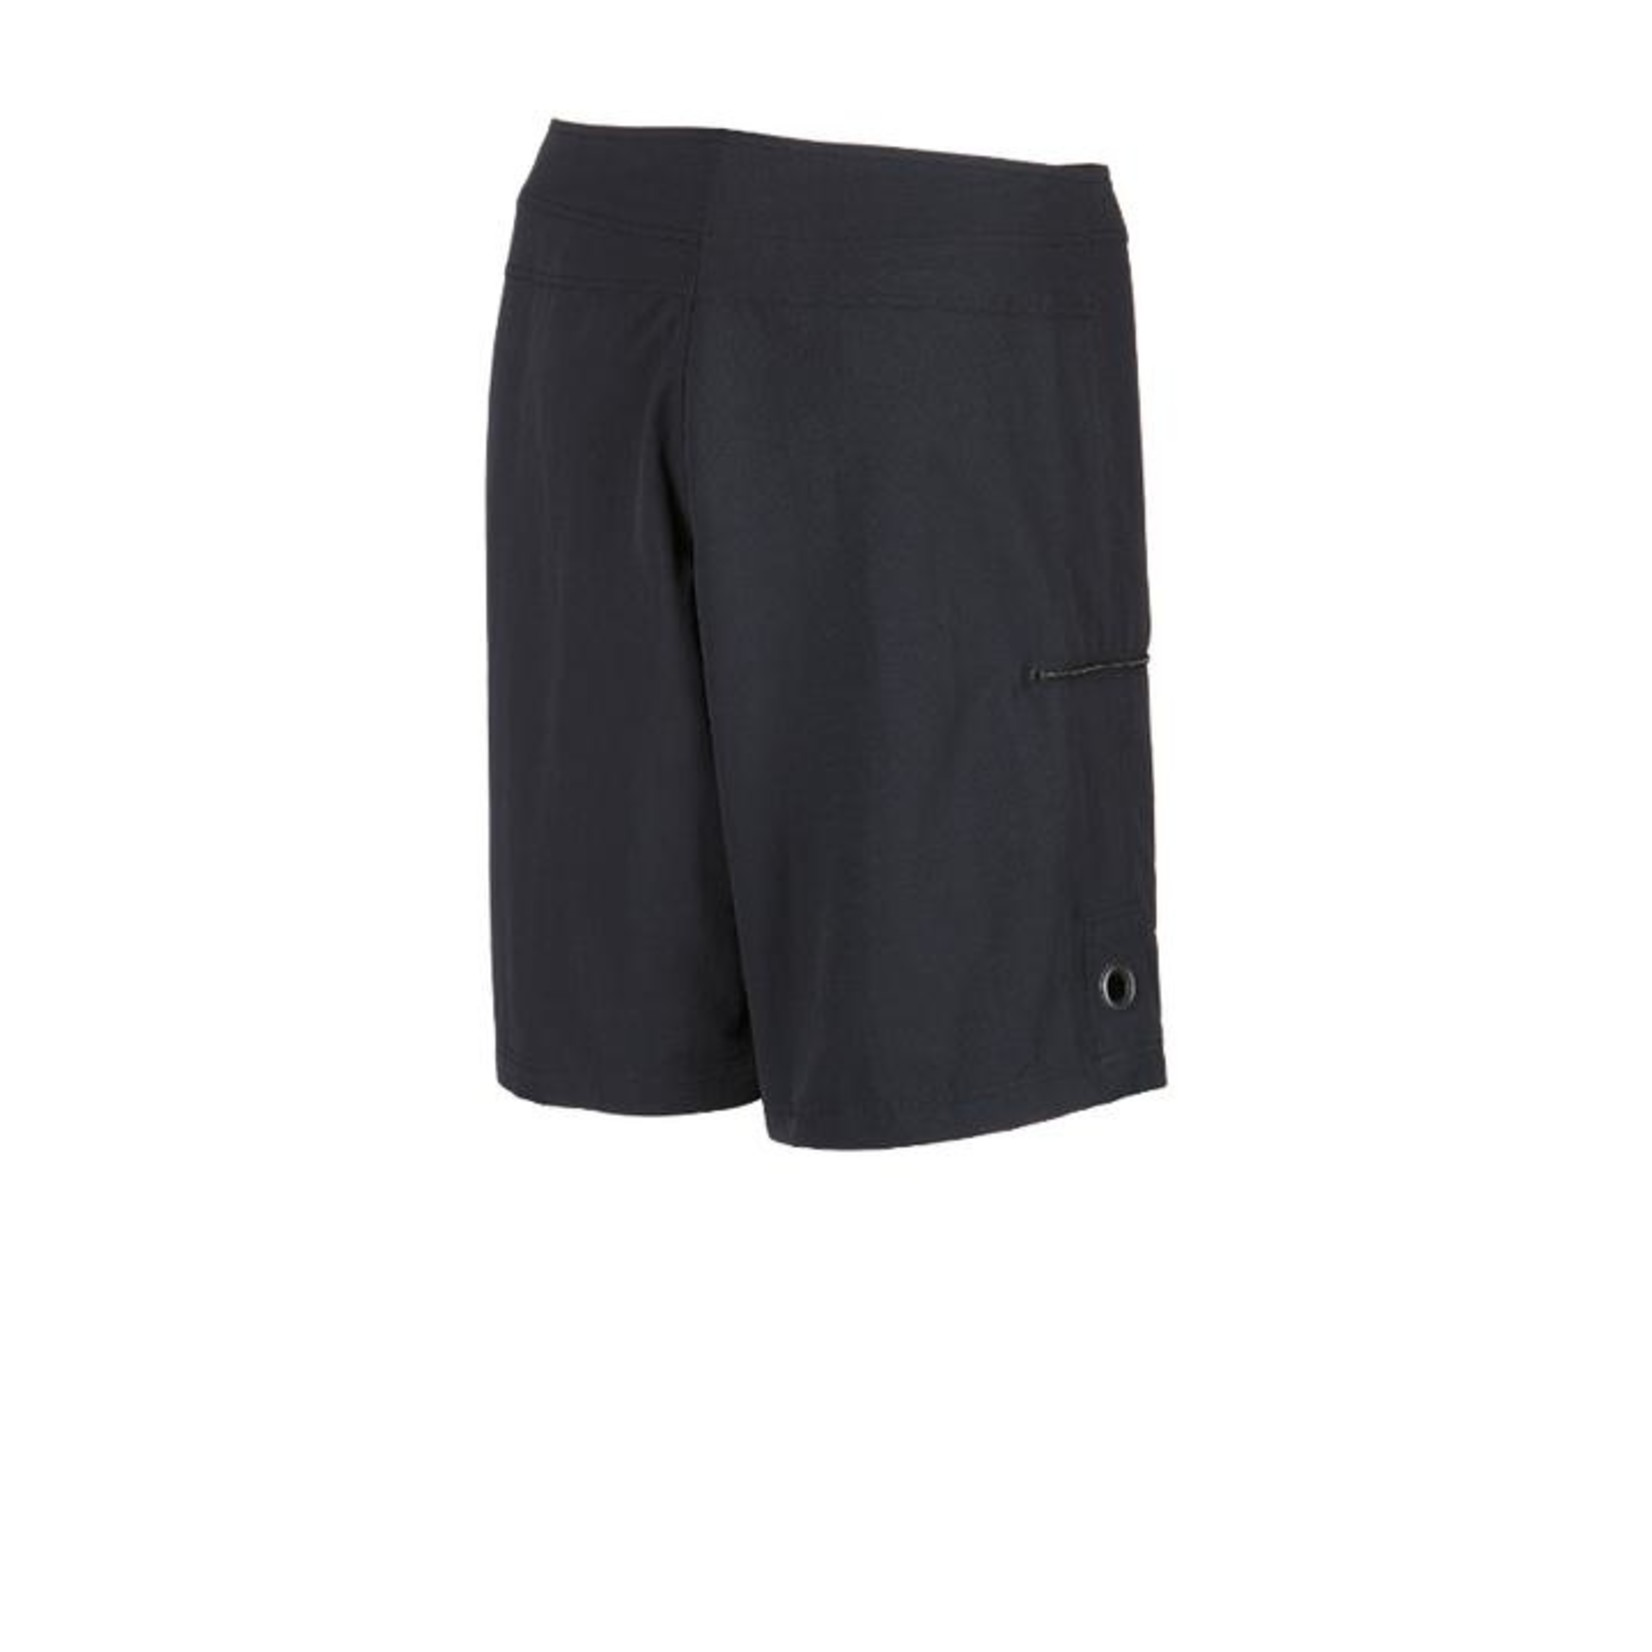 Immersion Research Men's Guide Shorts